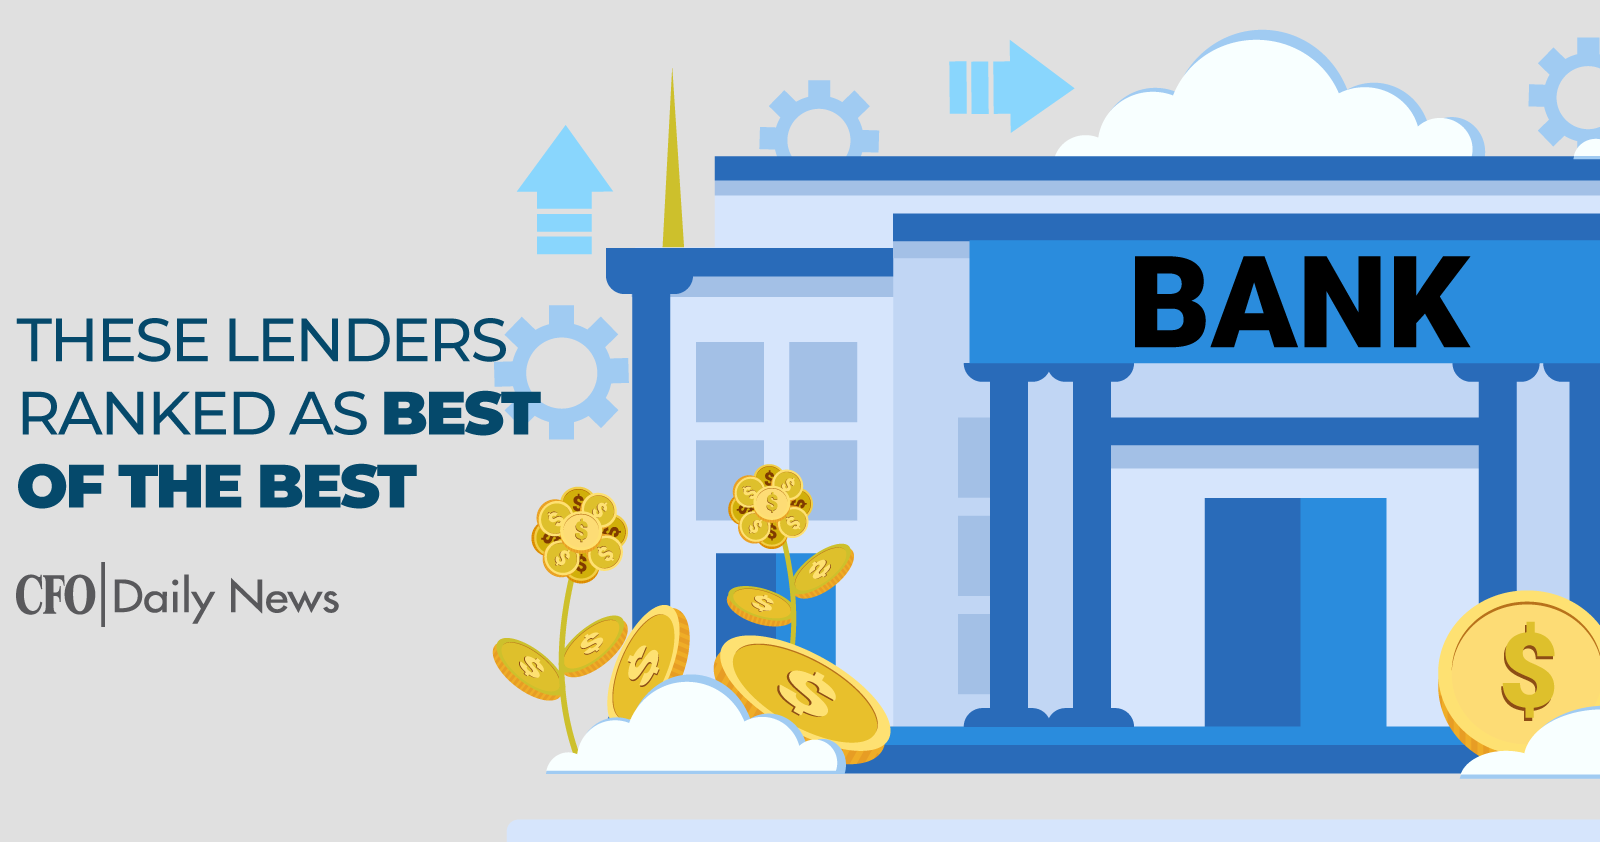 these lenders ranked as best of the best